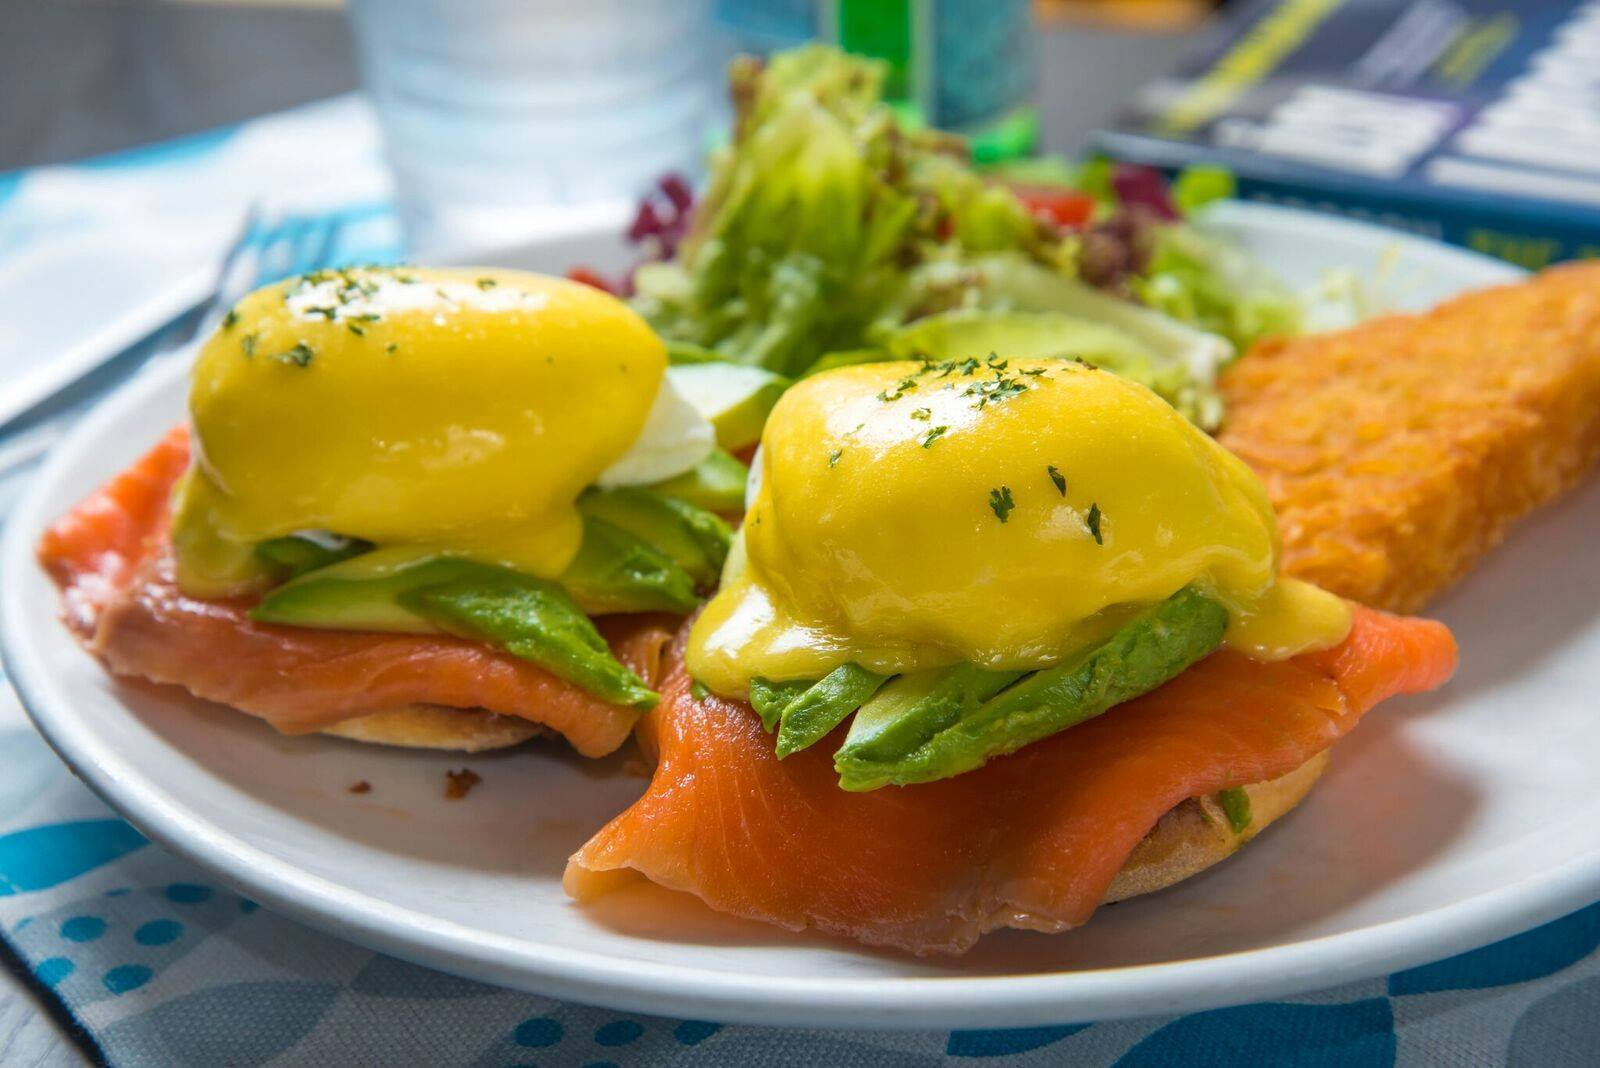 Brunch Club & Supper eggs Benedict